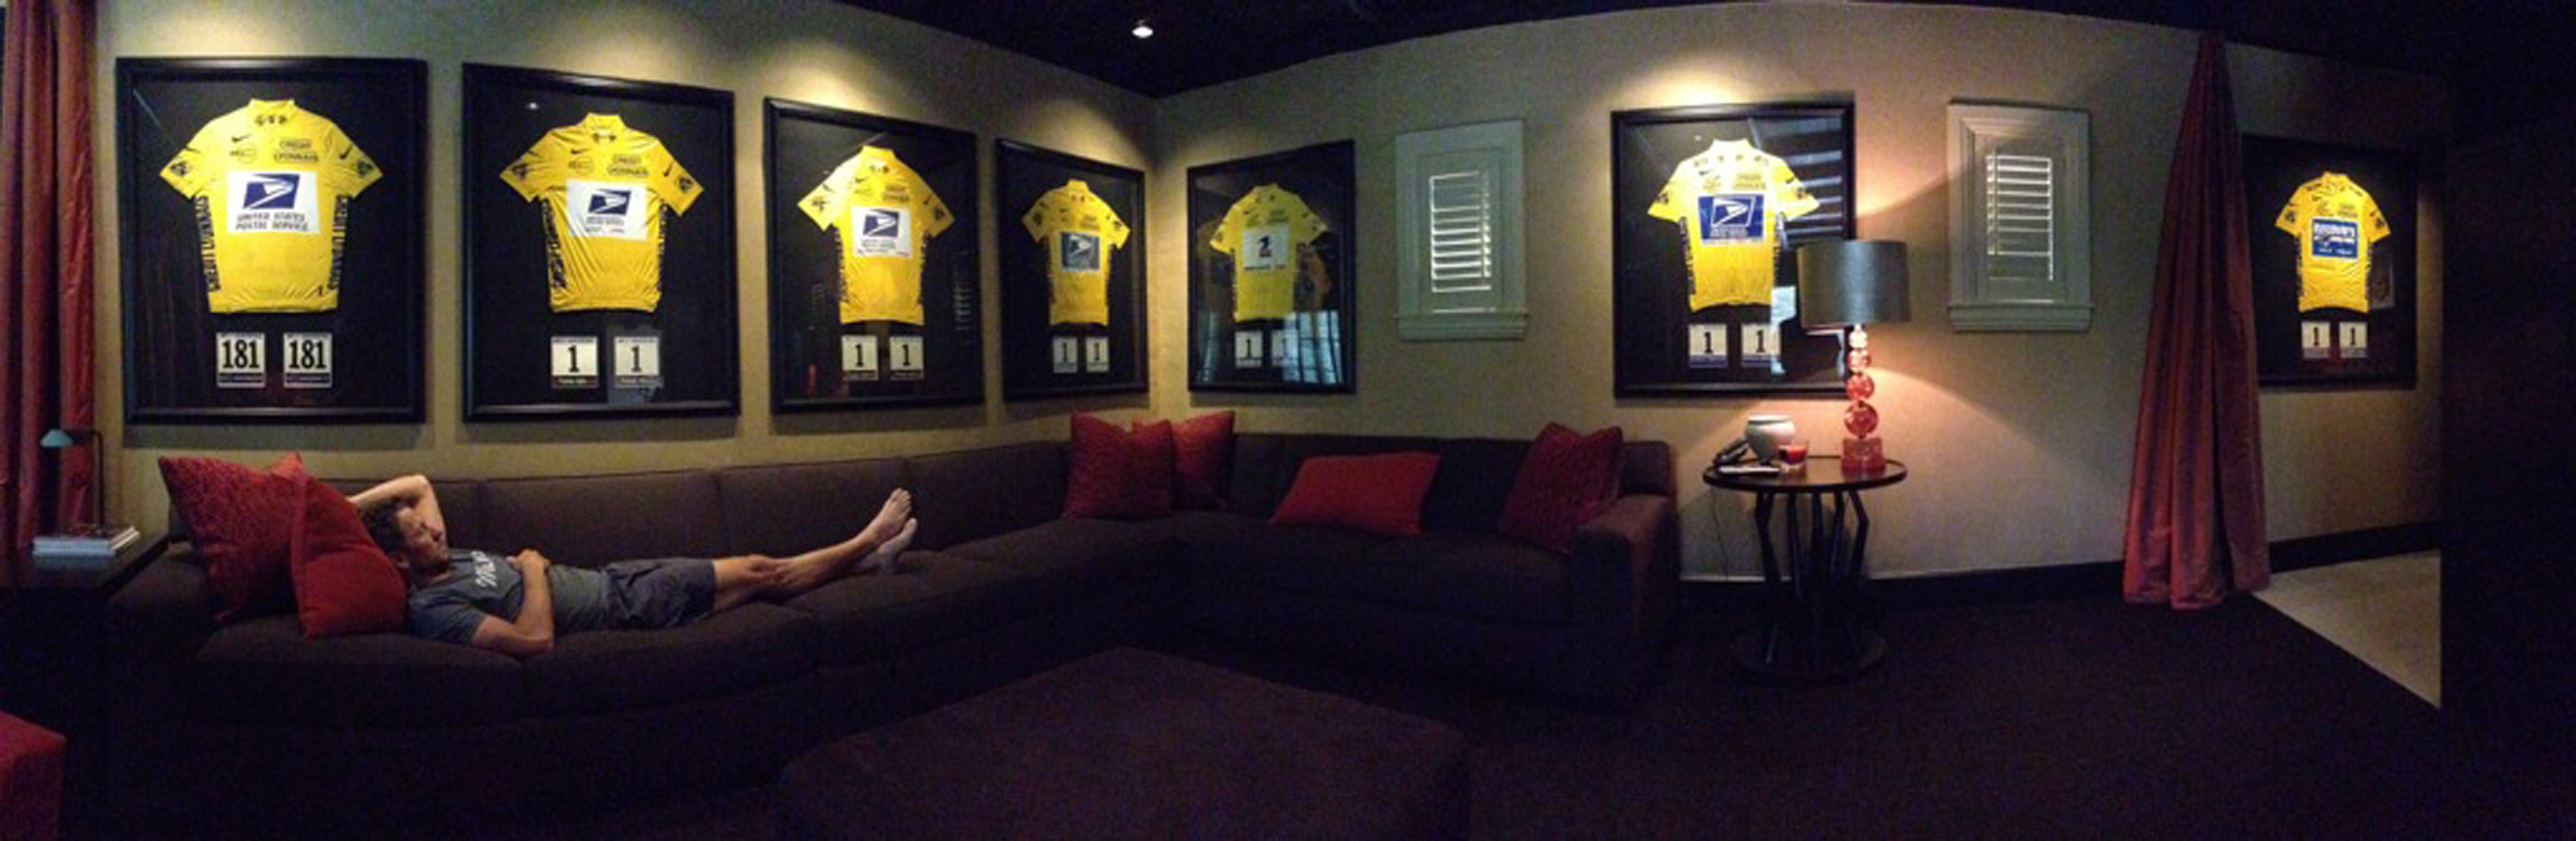 "A picture posted by Lance Armstrong on his Twitter account on November 10, 2012 shows him laying on a couch with his seven Tour de France yellow jerseys in the background. The picture was sent to Armstrong's 3.8 million Twitter followers under a message reading ""Back in Austin and just layin' around."" REUTERS/Lance Armstrong/Twitter/Handout (UNITED STATES - Tags: SPORT CYCLING TPX IMAGES OF THE DAY) NO SALES. NO ARCHIVES. FOR EDITORIAL USE ONLY. NOT FOR SALE FOR MARKETING OR ADVERTISING CAMPAIGNS. THIS IMAGE HAS BEEN SUPPLIED BY A THIRD PARTY. IT IS DISTRIBUTED, EXACTLY AS RECEIVED BY REUTERS, AS A SERVICE TO CLIENTS"